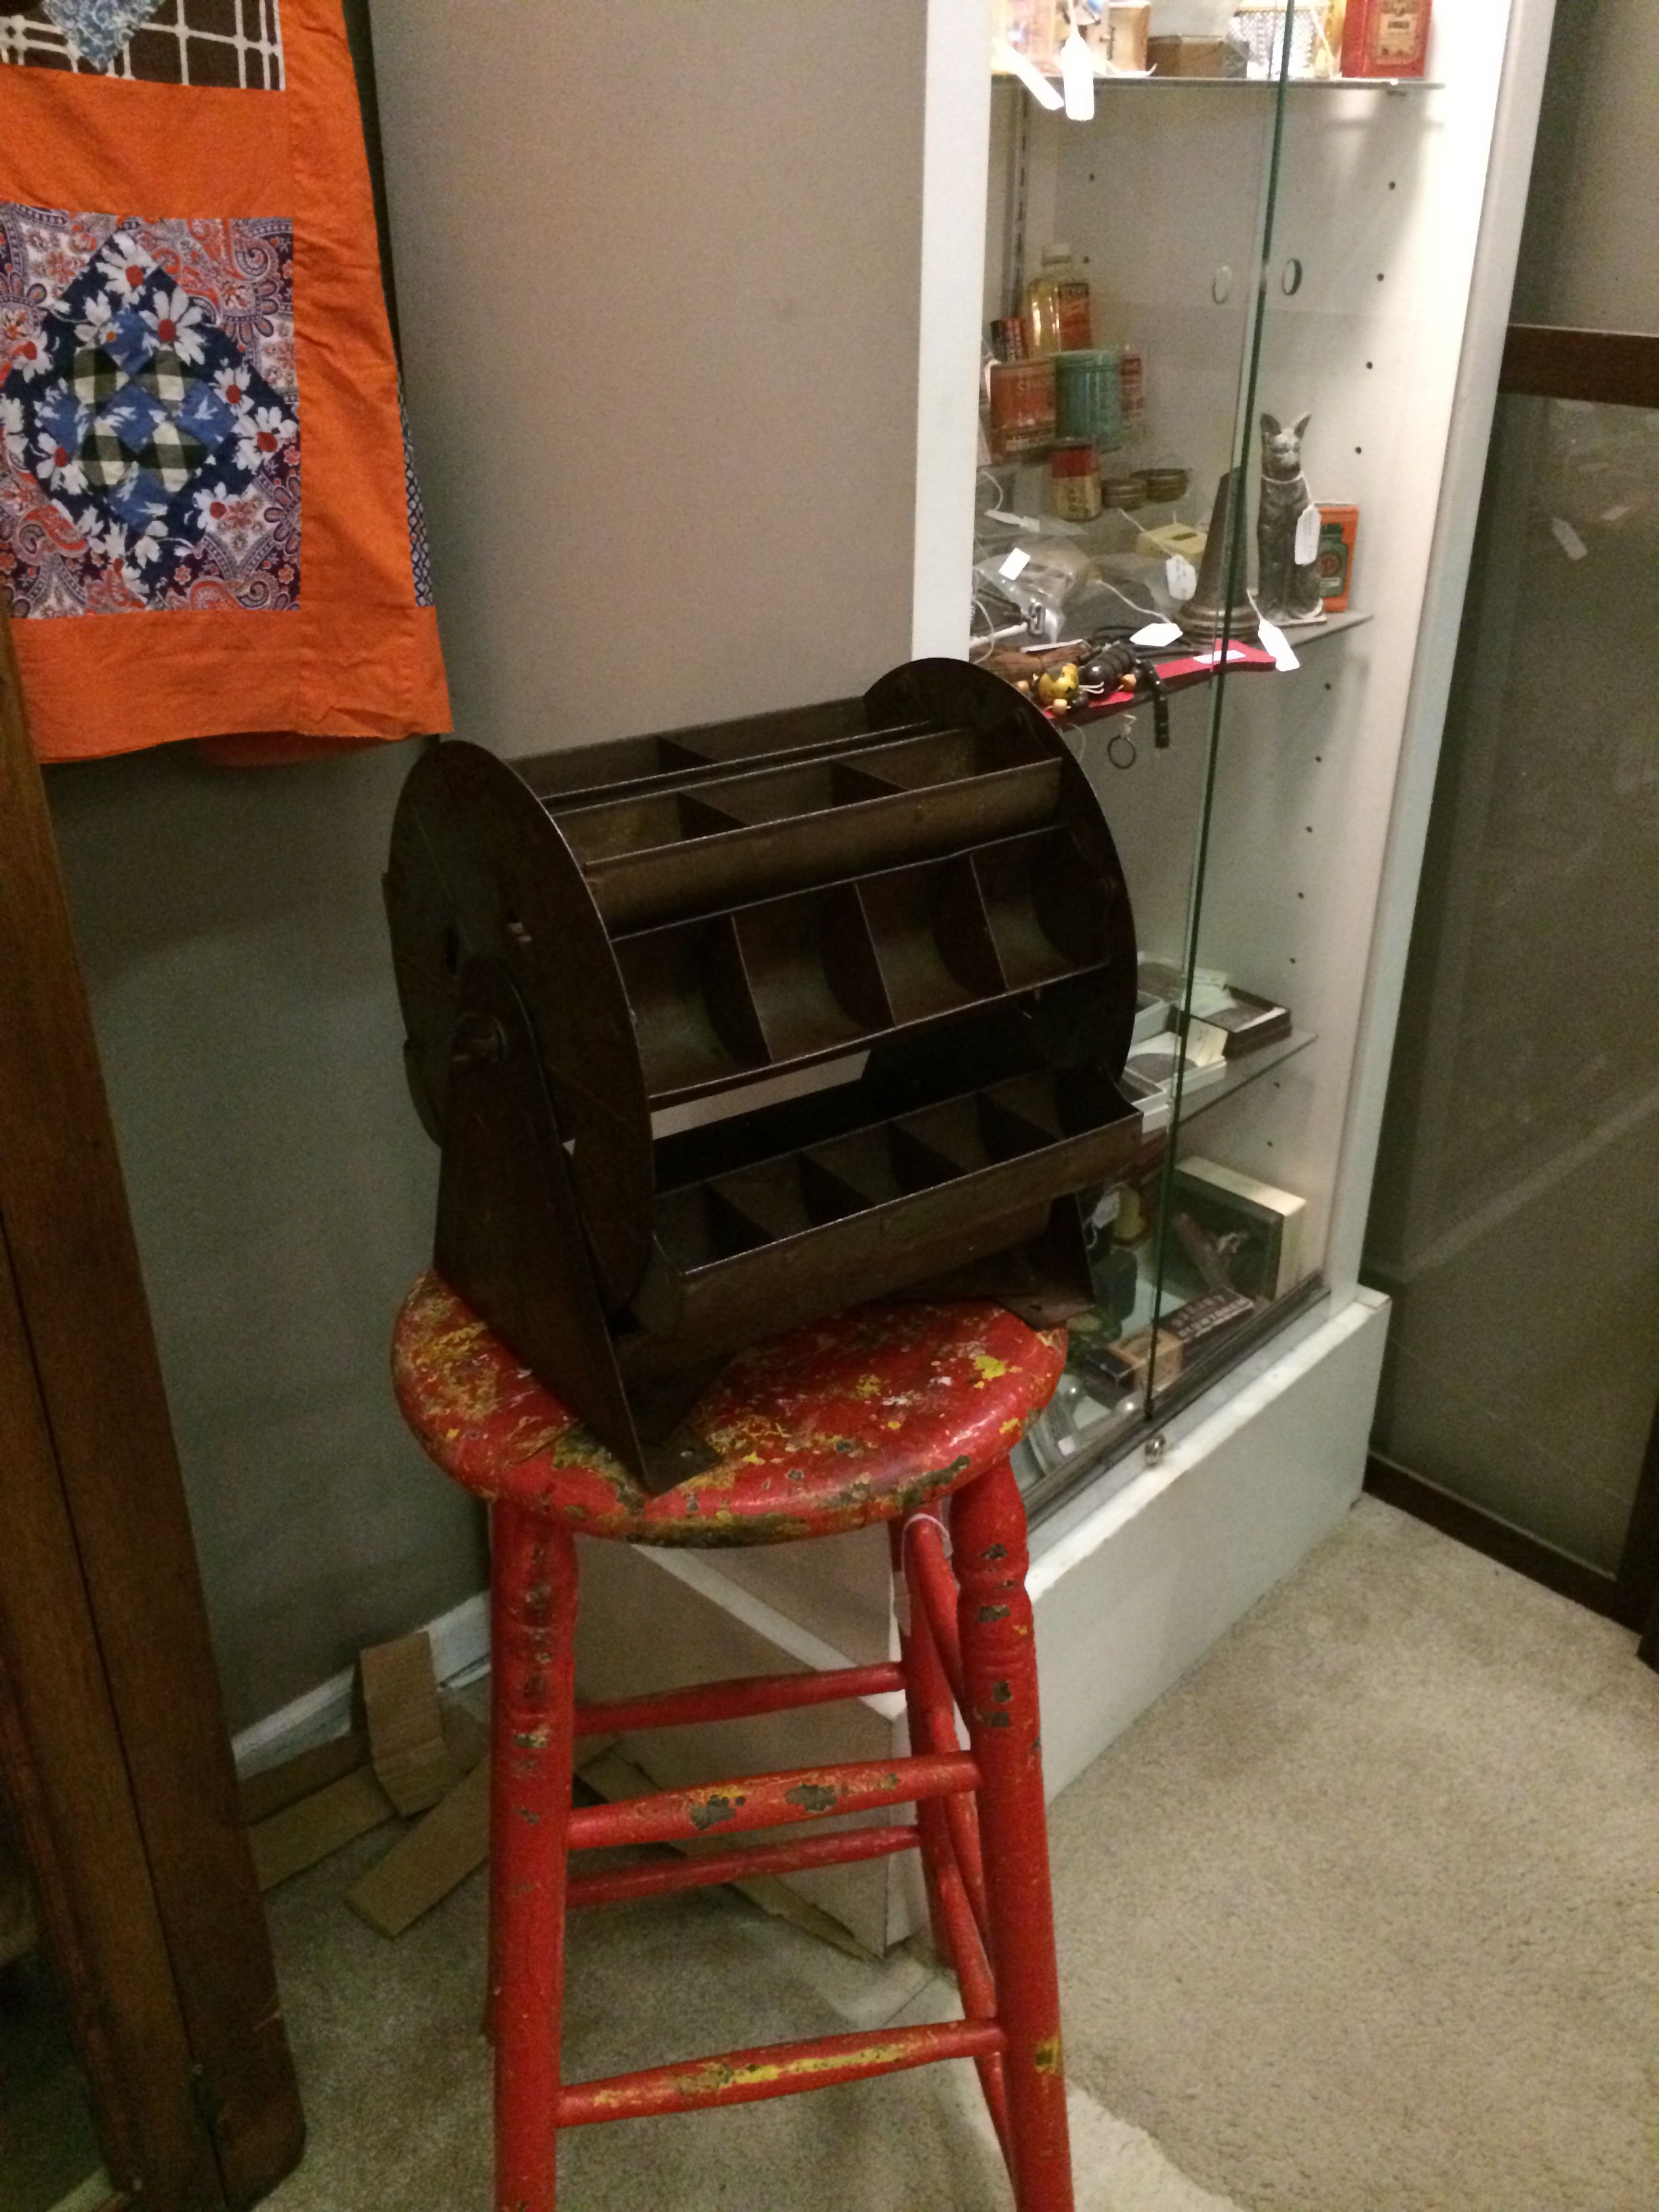 Vintage parts bin to use for organizing! Railroad Towne Antique Mall, 321 W. 3rd ST., Grand Island, NE 68803.  308-398-2222.